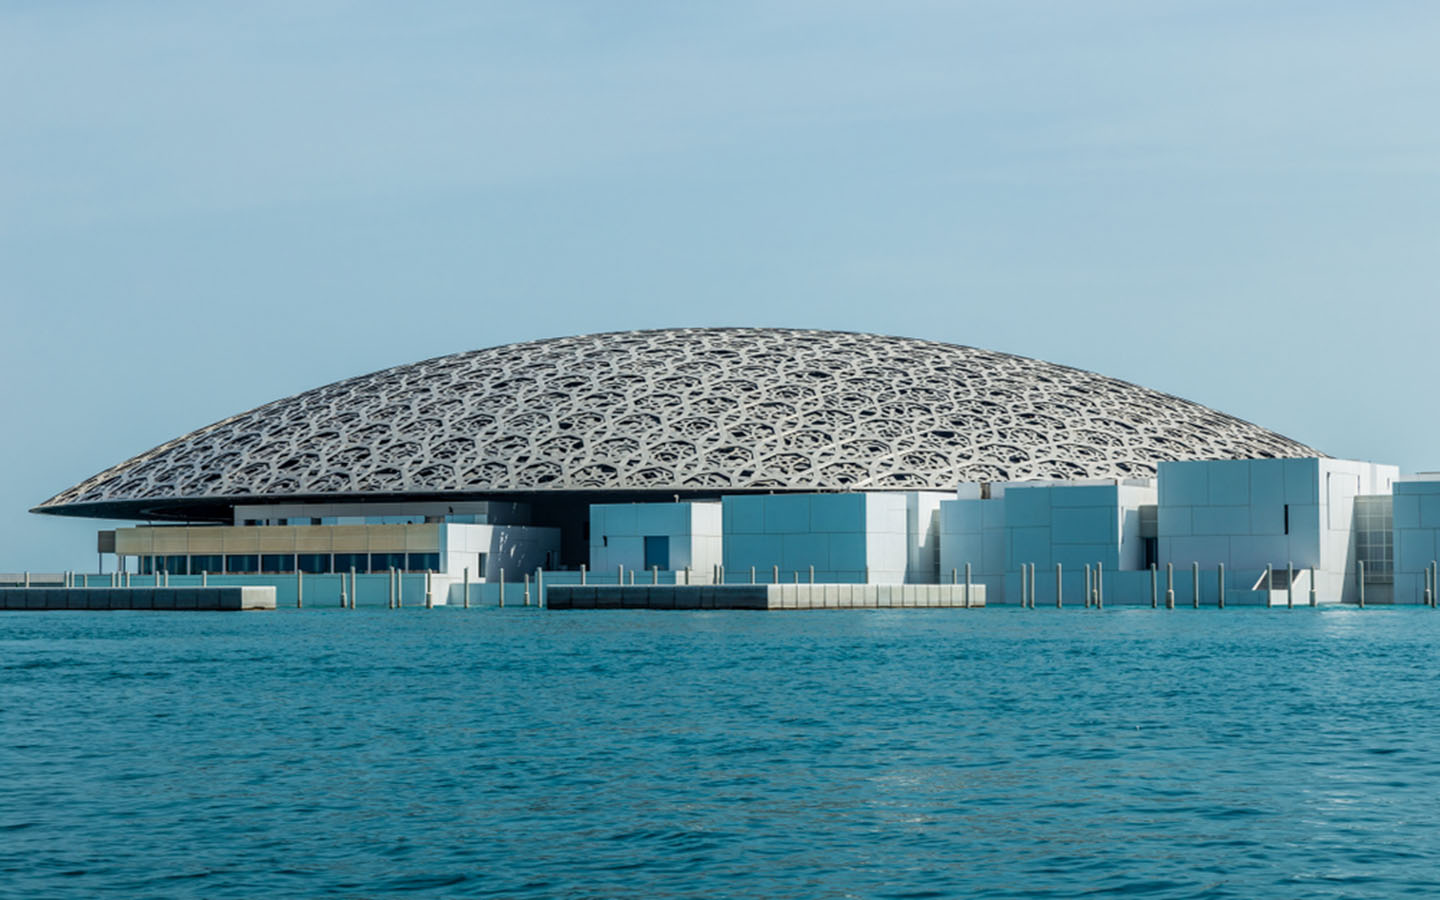 The Rain of Light Dome at Louvre Museum Abu Dhabi